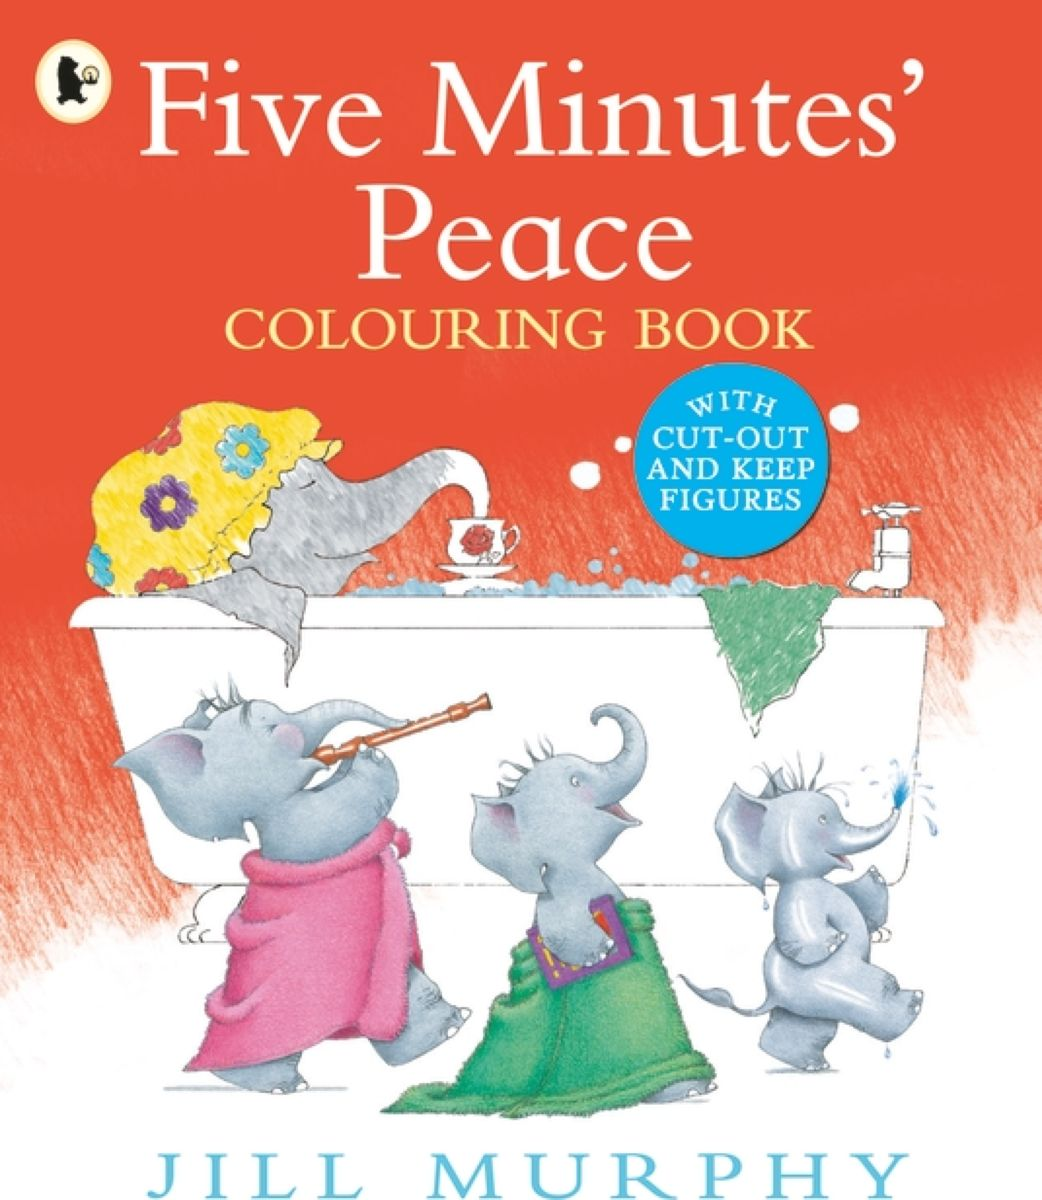 Five Minutes' Peace: Colouring Book